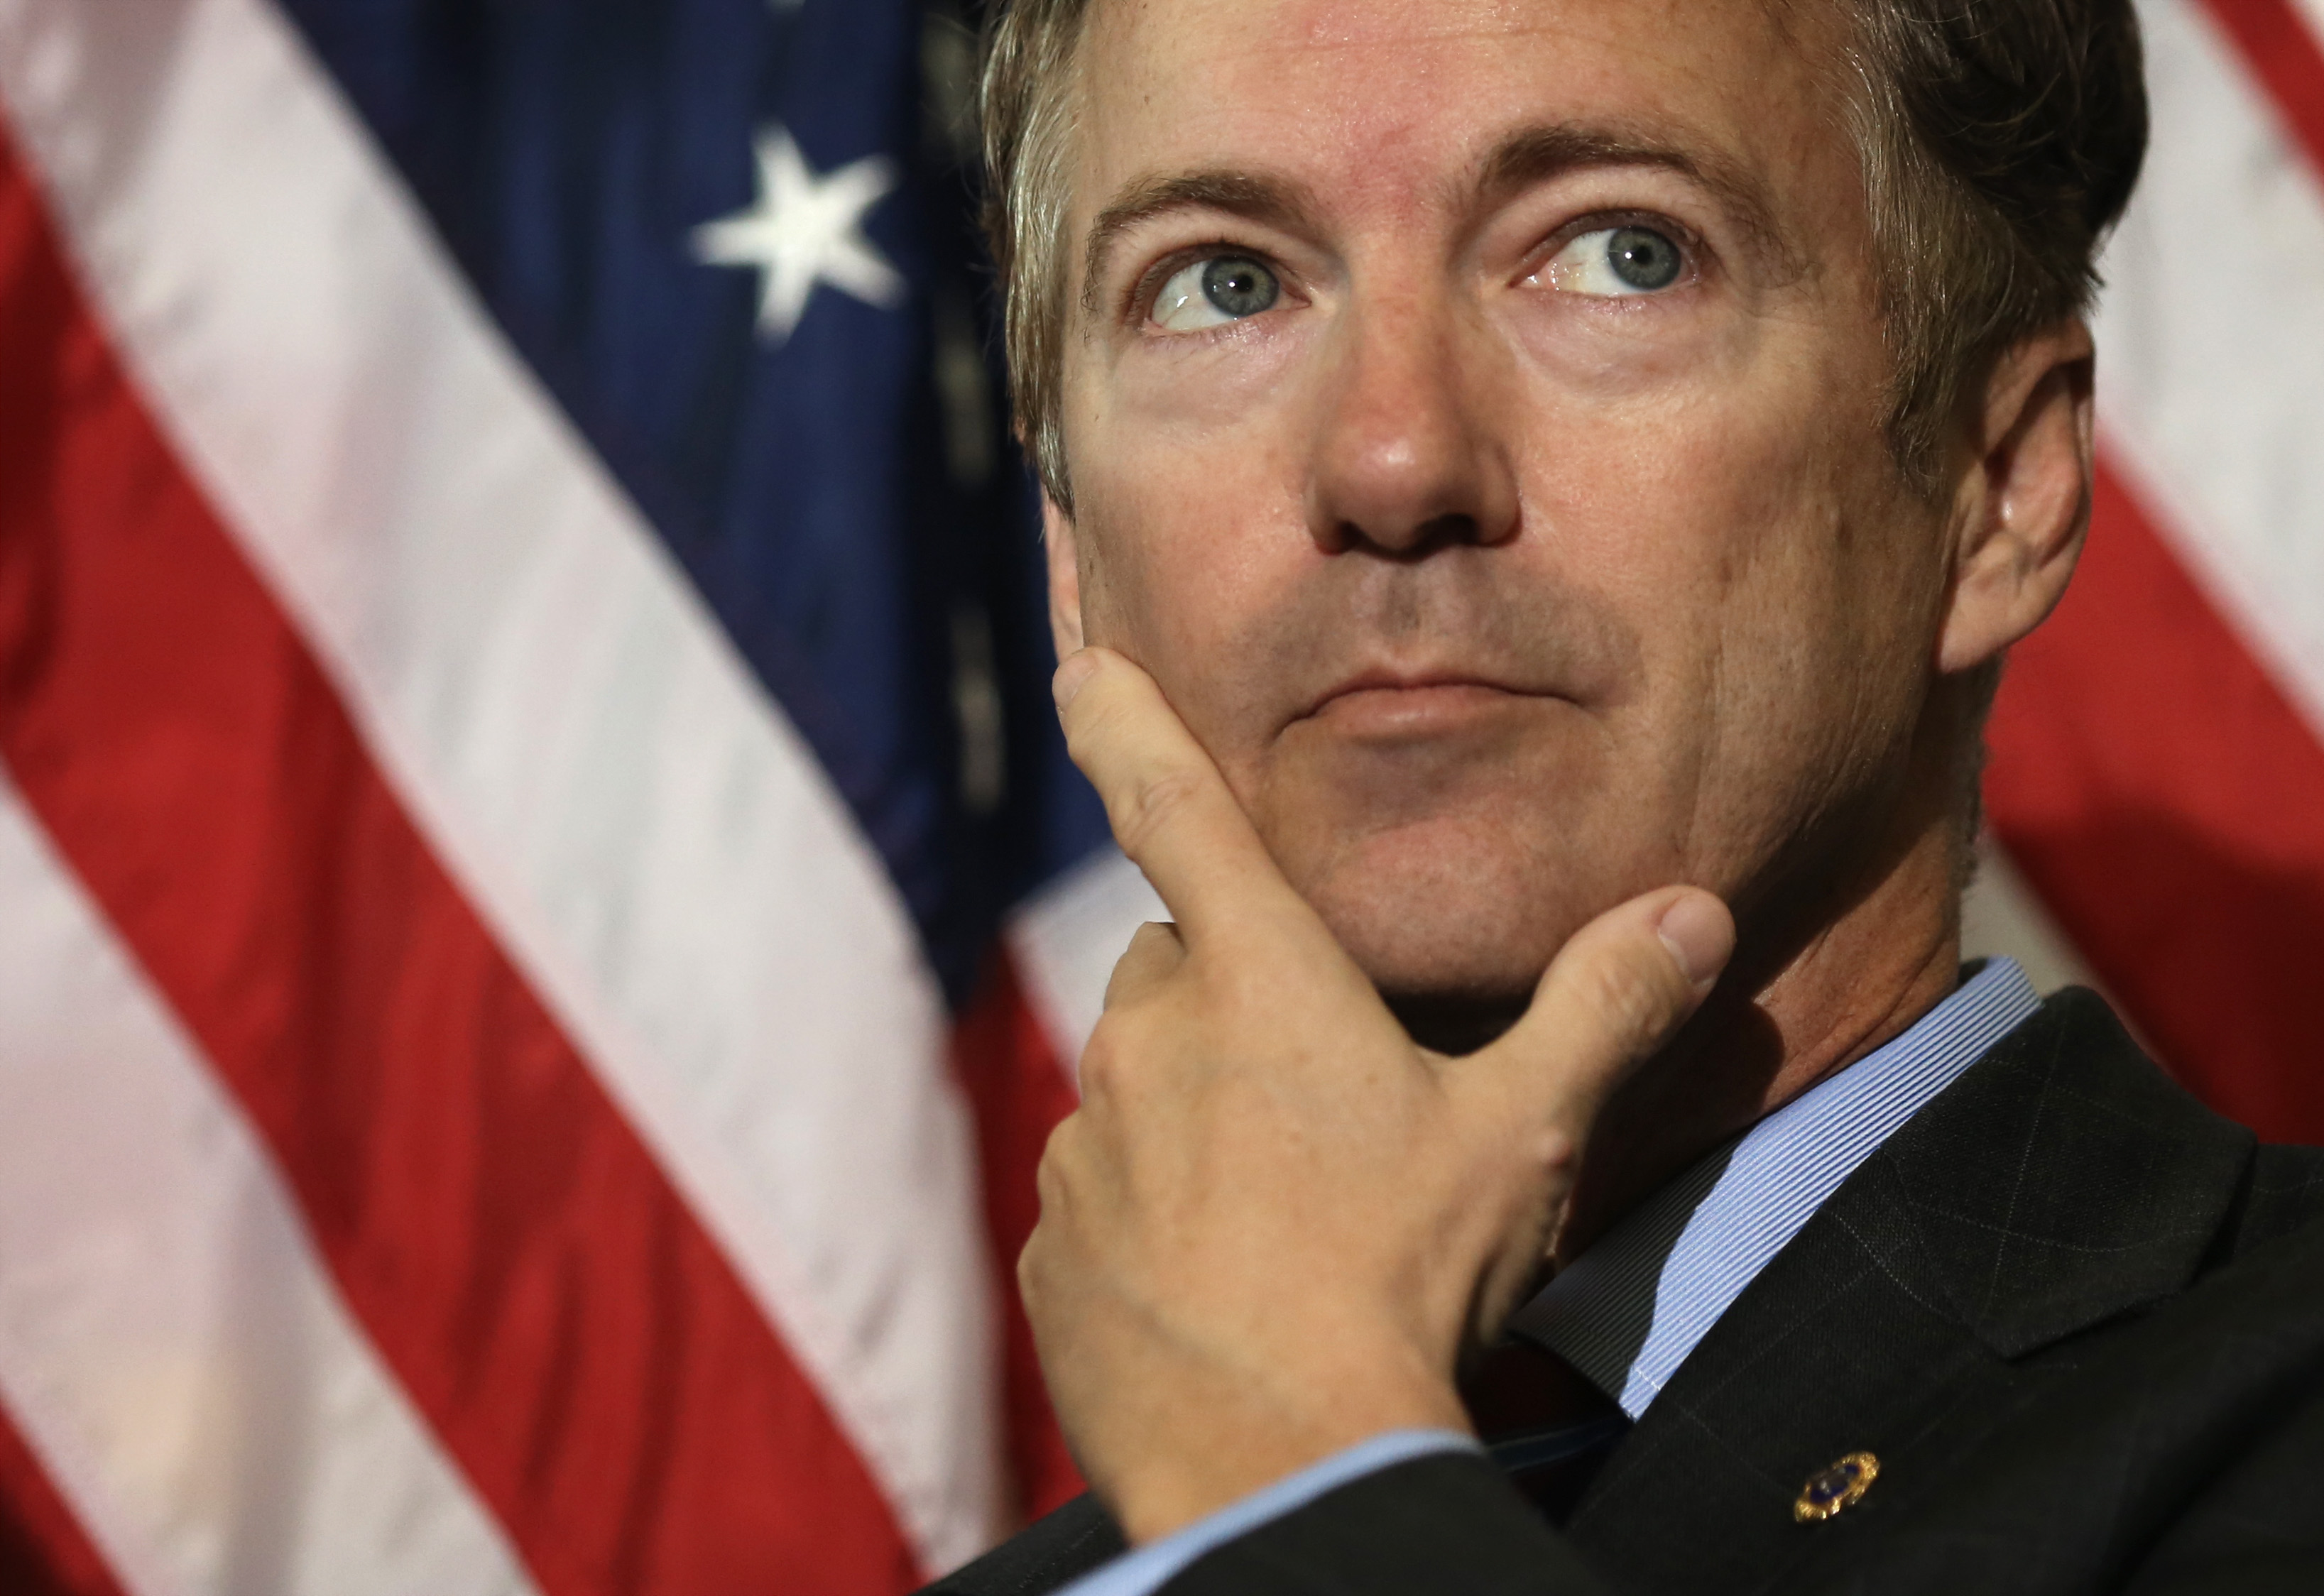 Rand Paul (R-KY) on November 6, 2013 on Capitol Hill in Washington, DC.